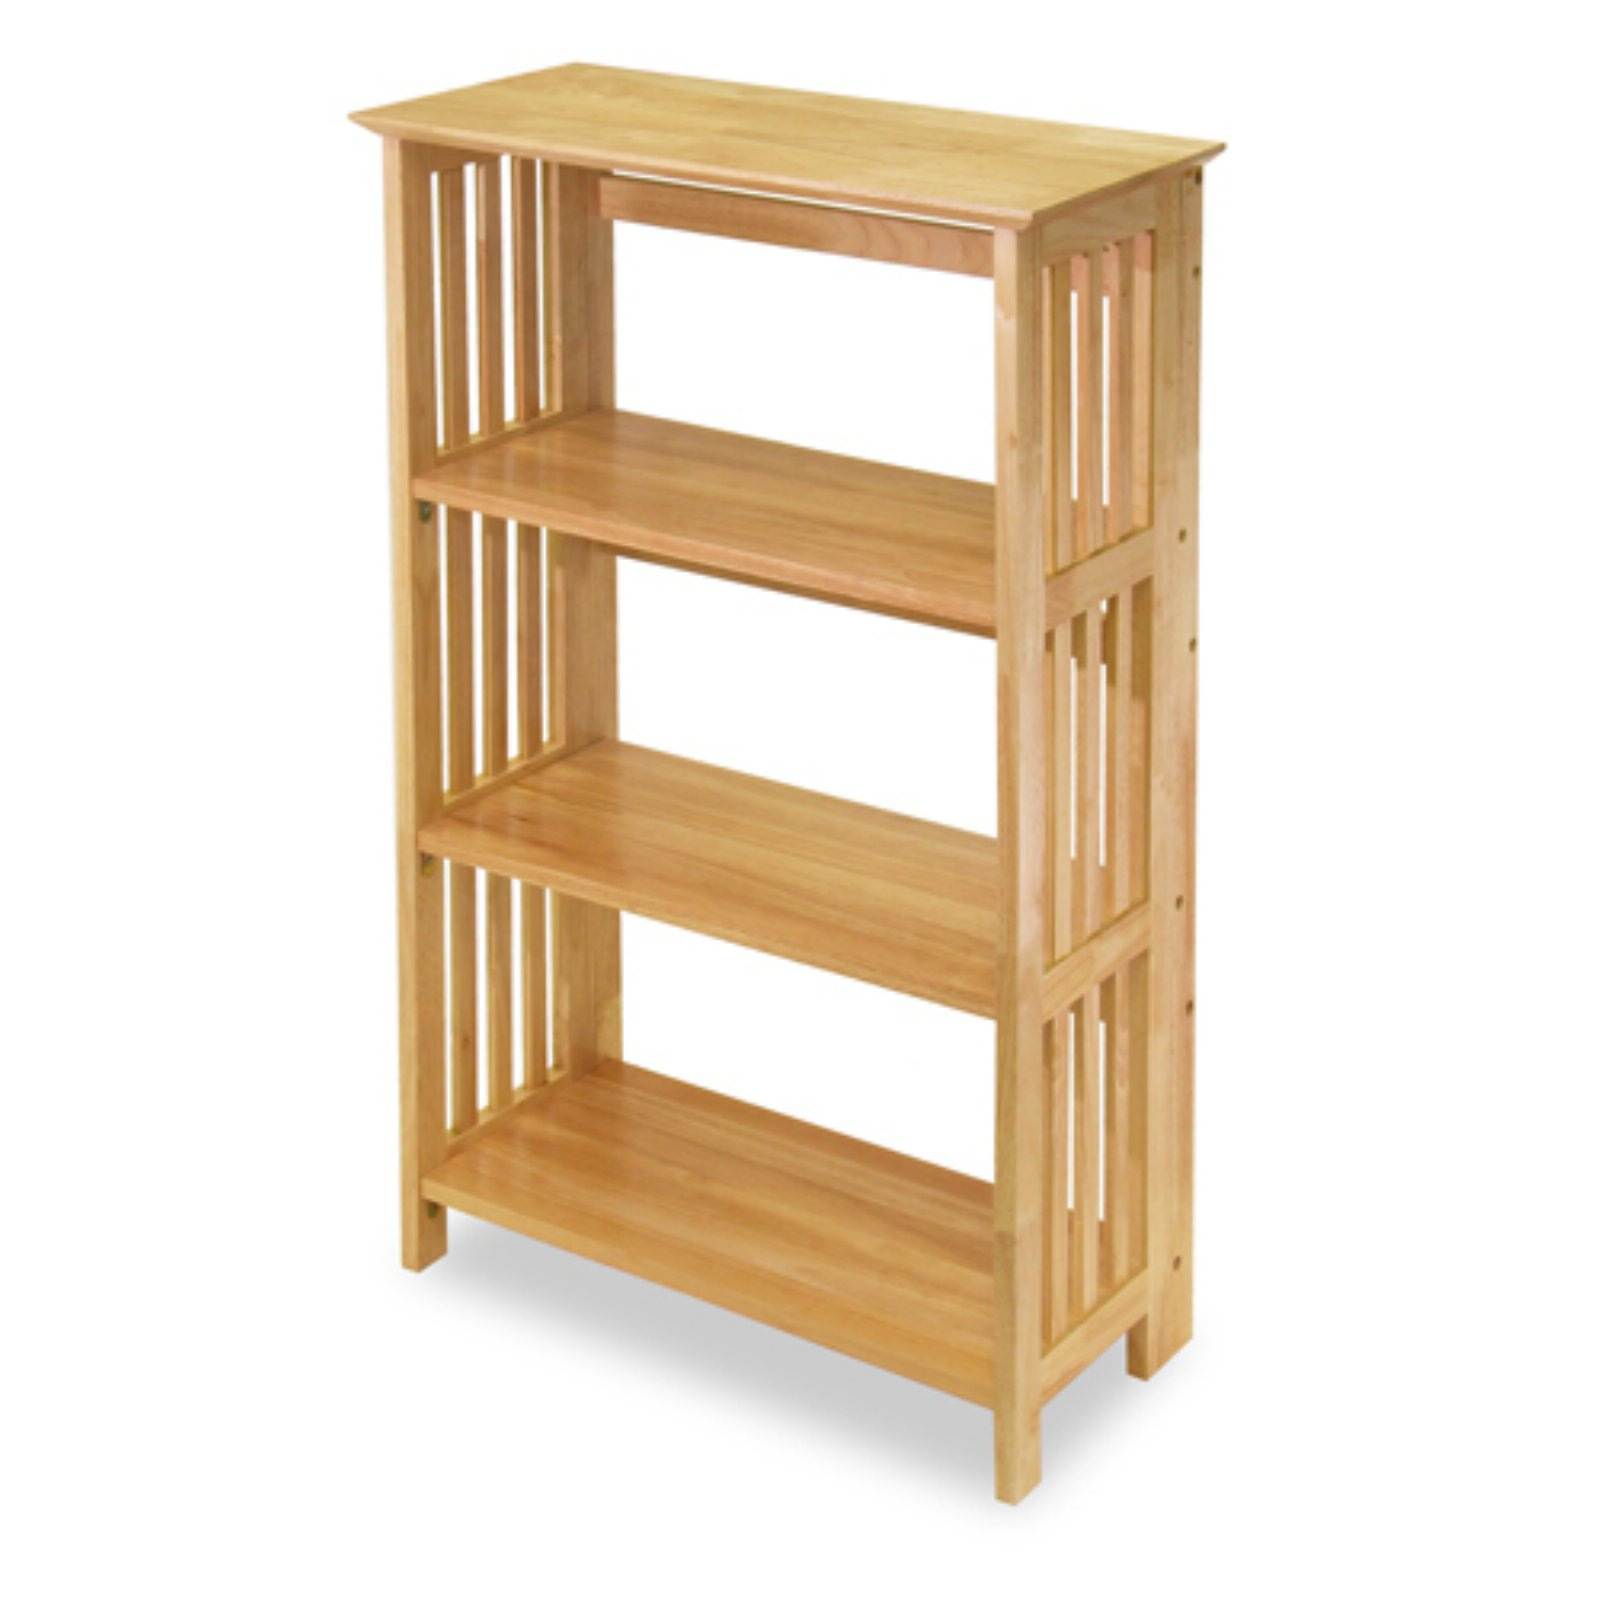 Folding Mission Bookstand / Shelf, Honey Pine